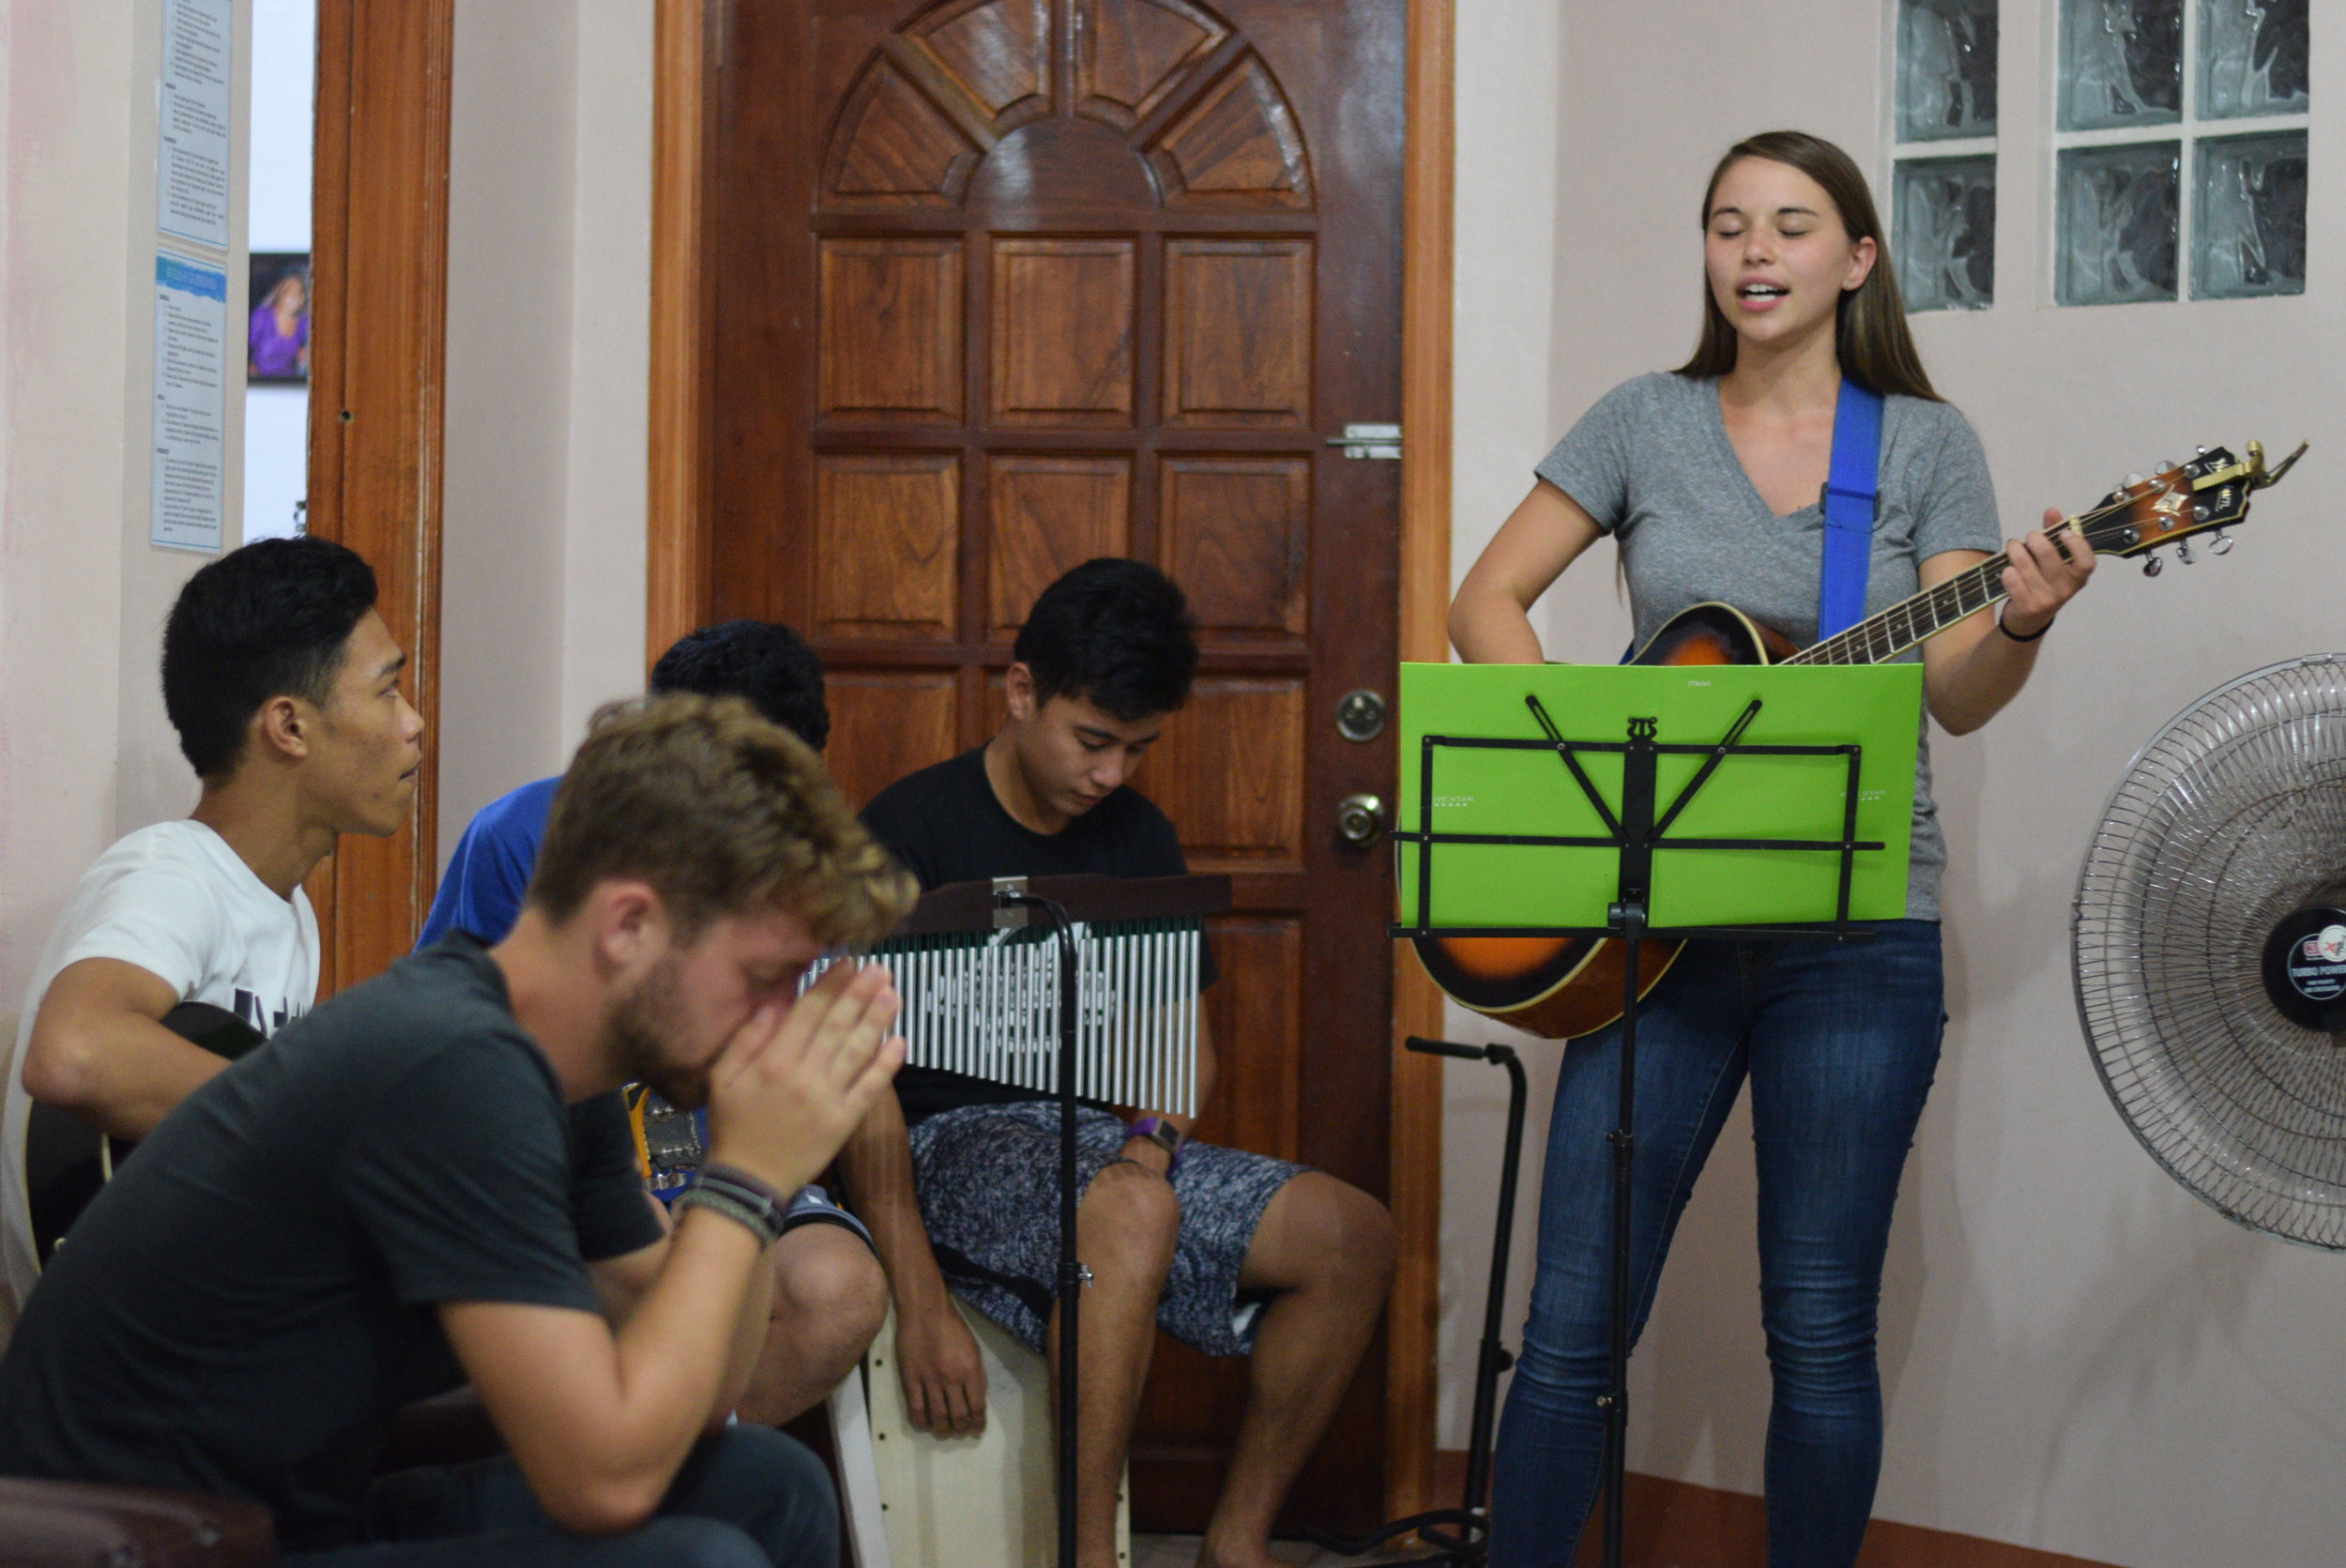 Brittan leads worship for a weekly gathering at Tahanan. Youth come to Tahanan throughout the week for times of worship, fellowship and bible study together.